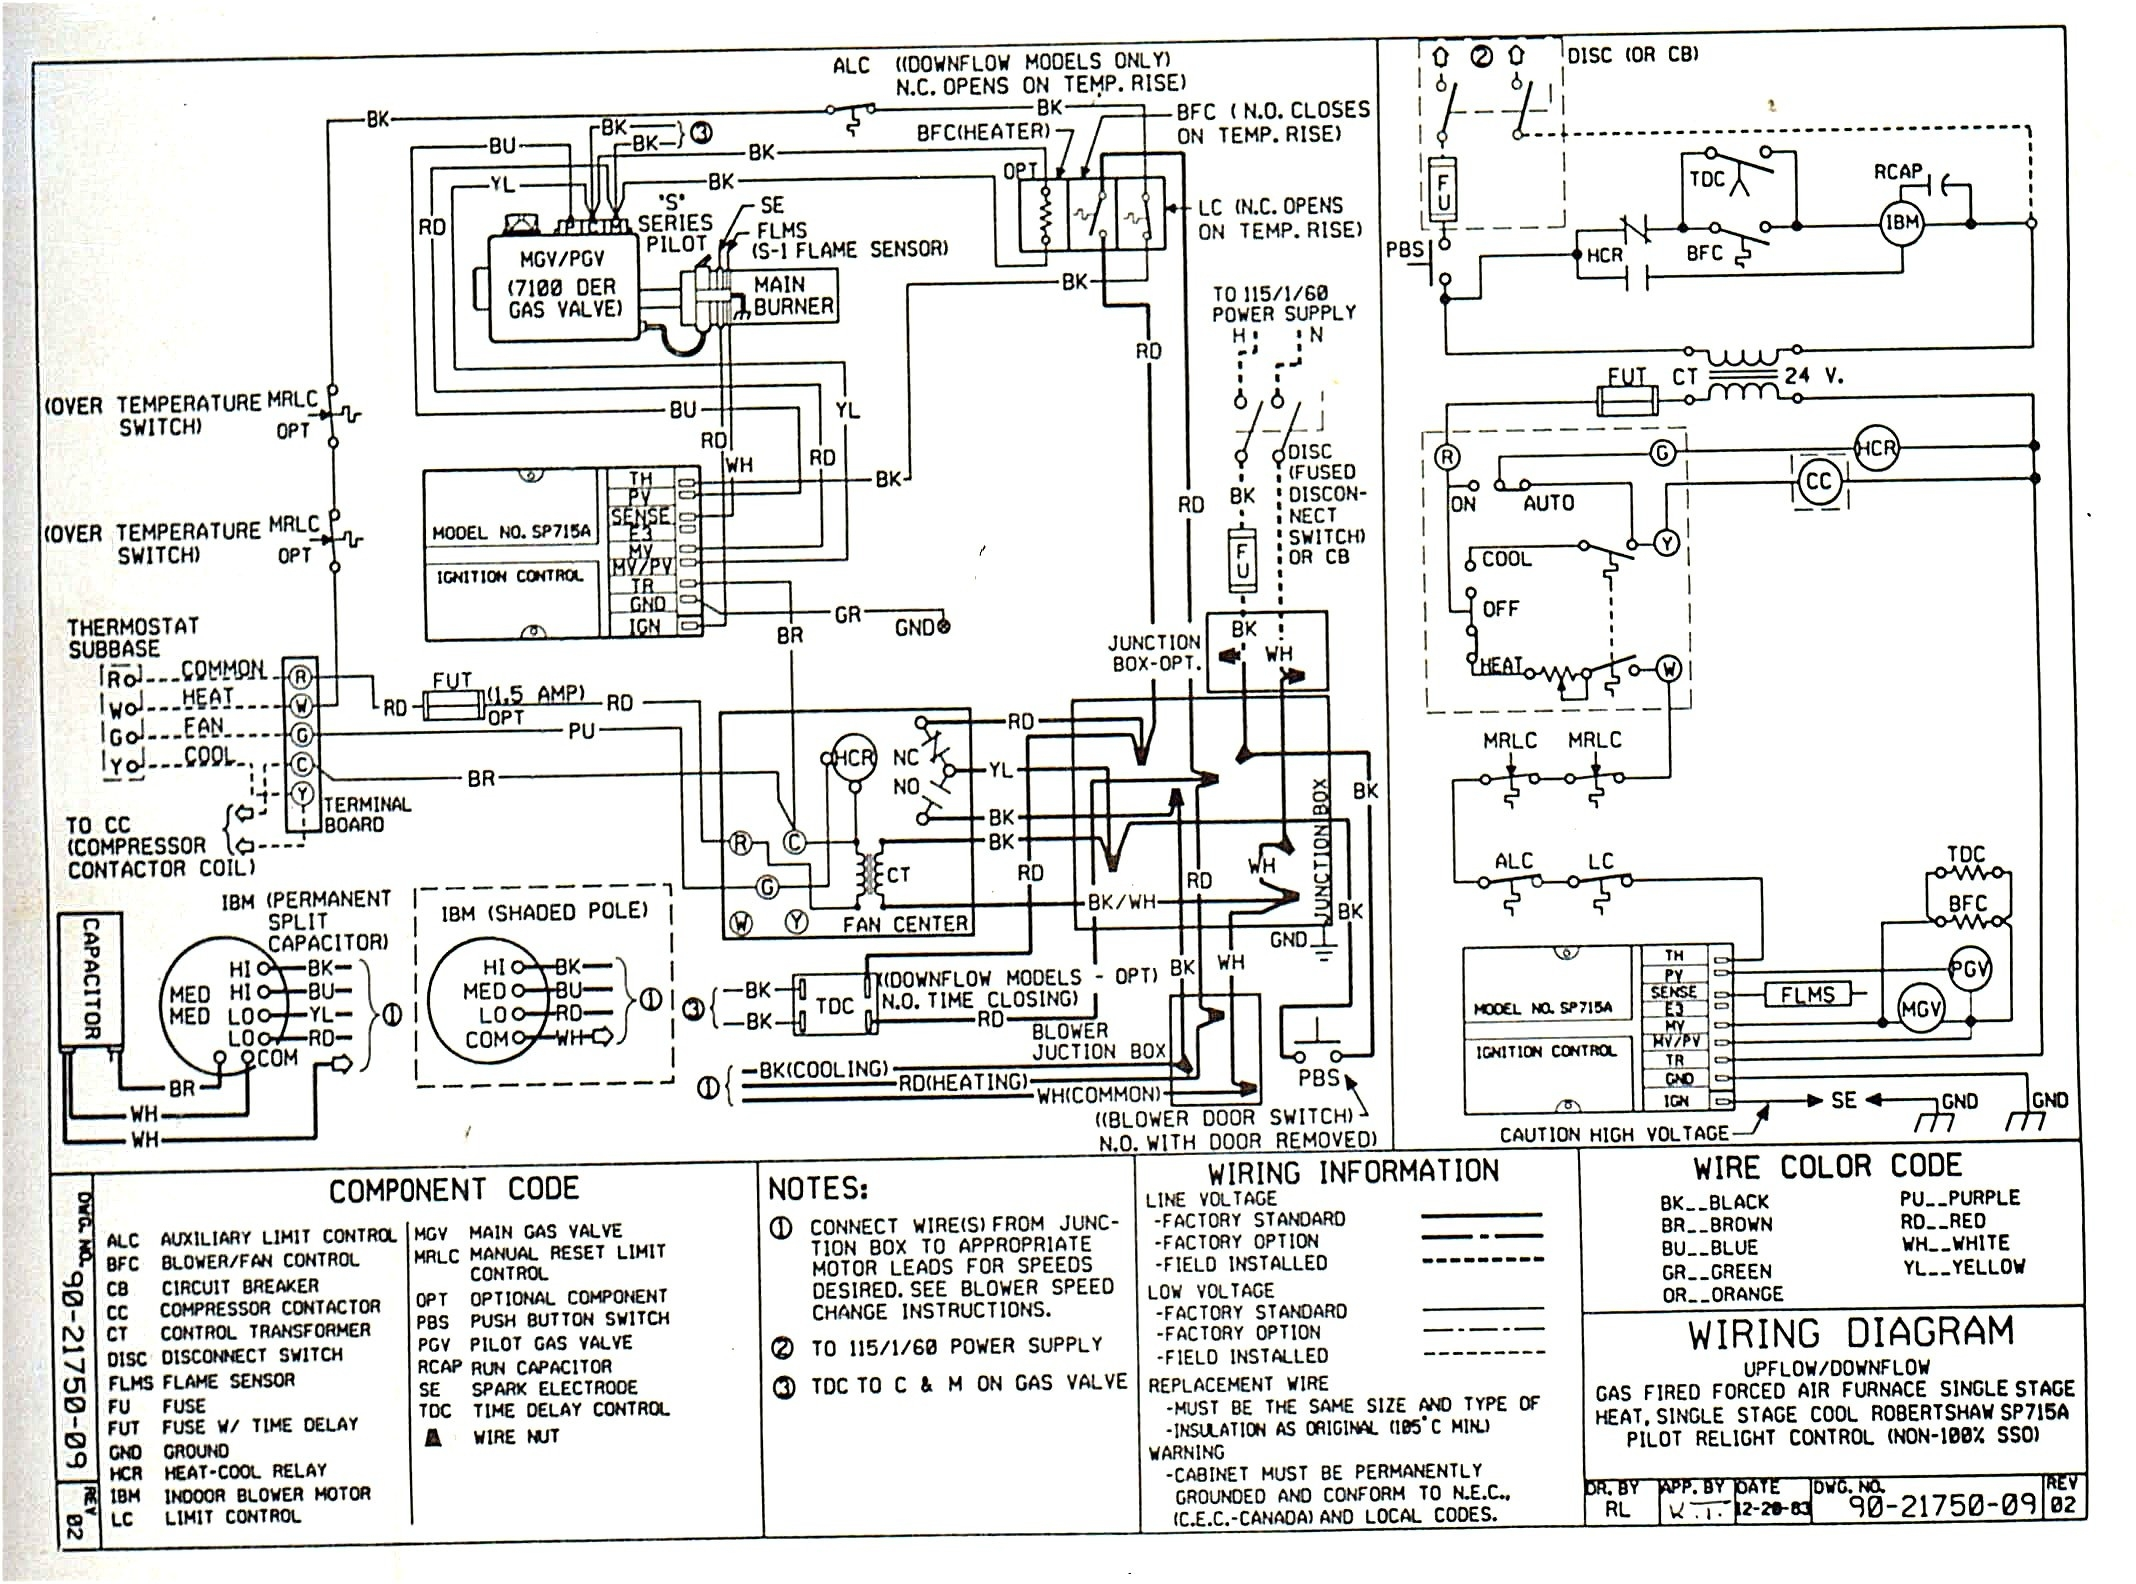 Comfort Ga Furnace Wiring Diagram